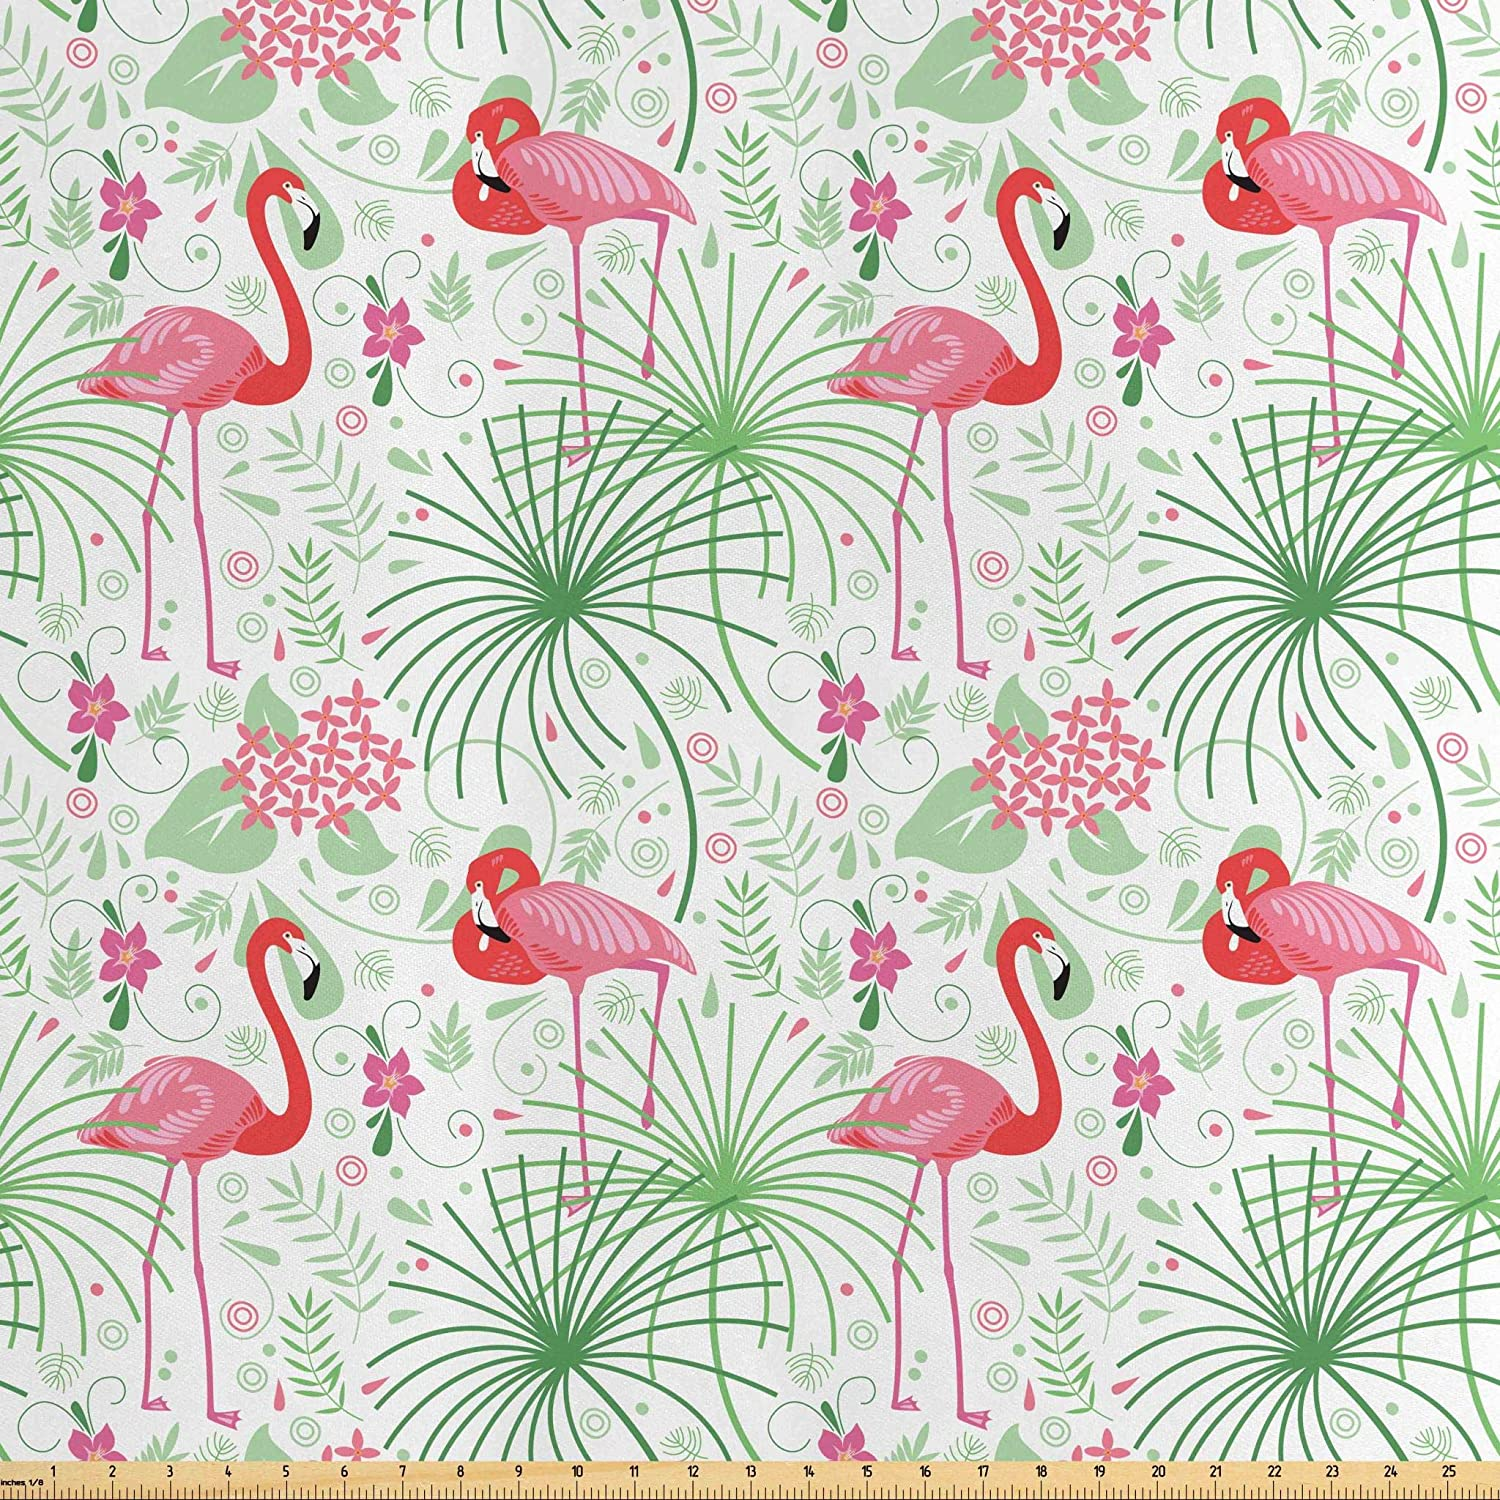 Lunarable Nautical Fabric by The Yard, Floral Pattern Flamingo Botany Greenery Floral Romantic Feminine Design Art, Decorative Satin Fabric for Home Textiles and Crafts, 1 Yard, Green Pink White